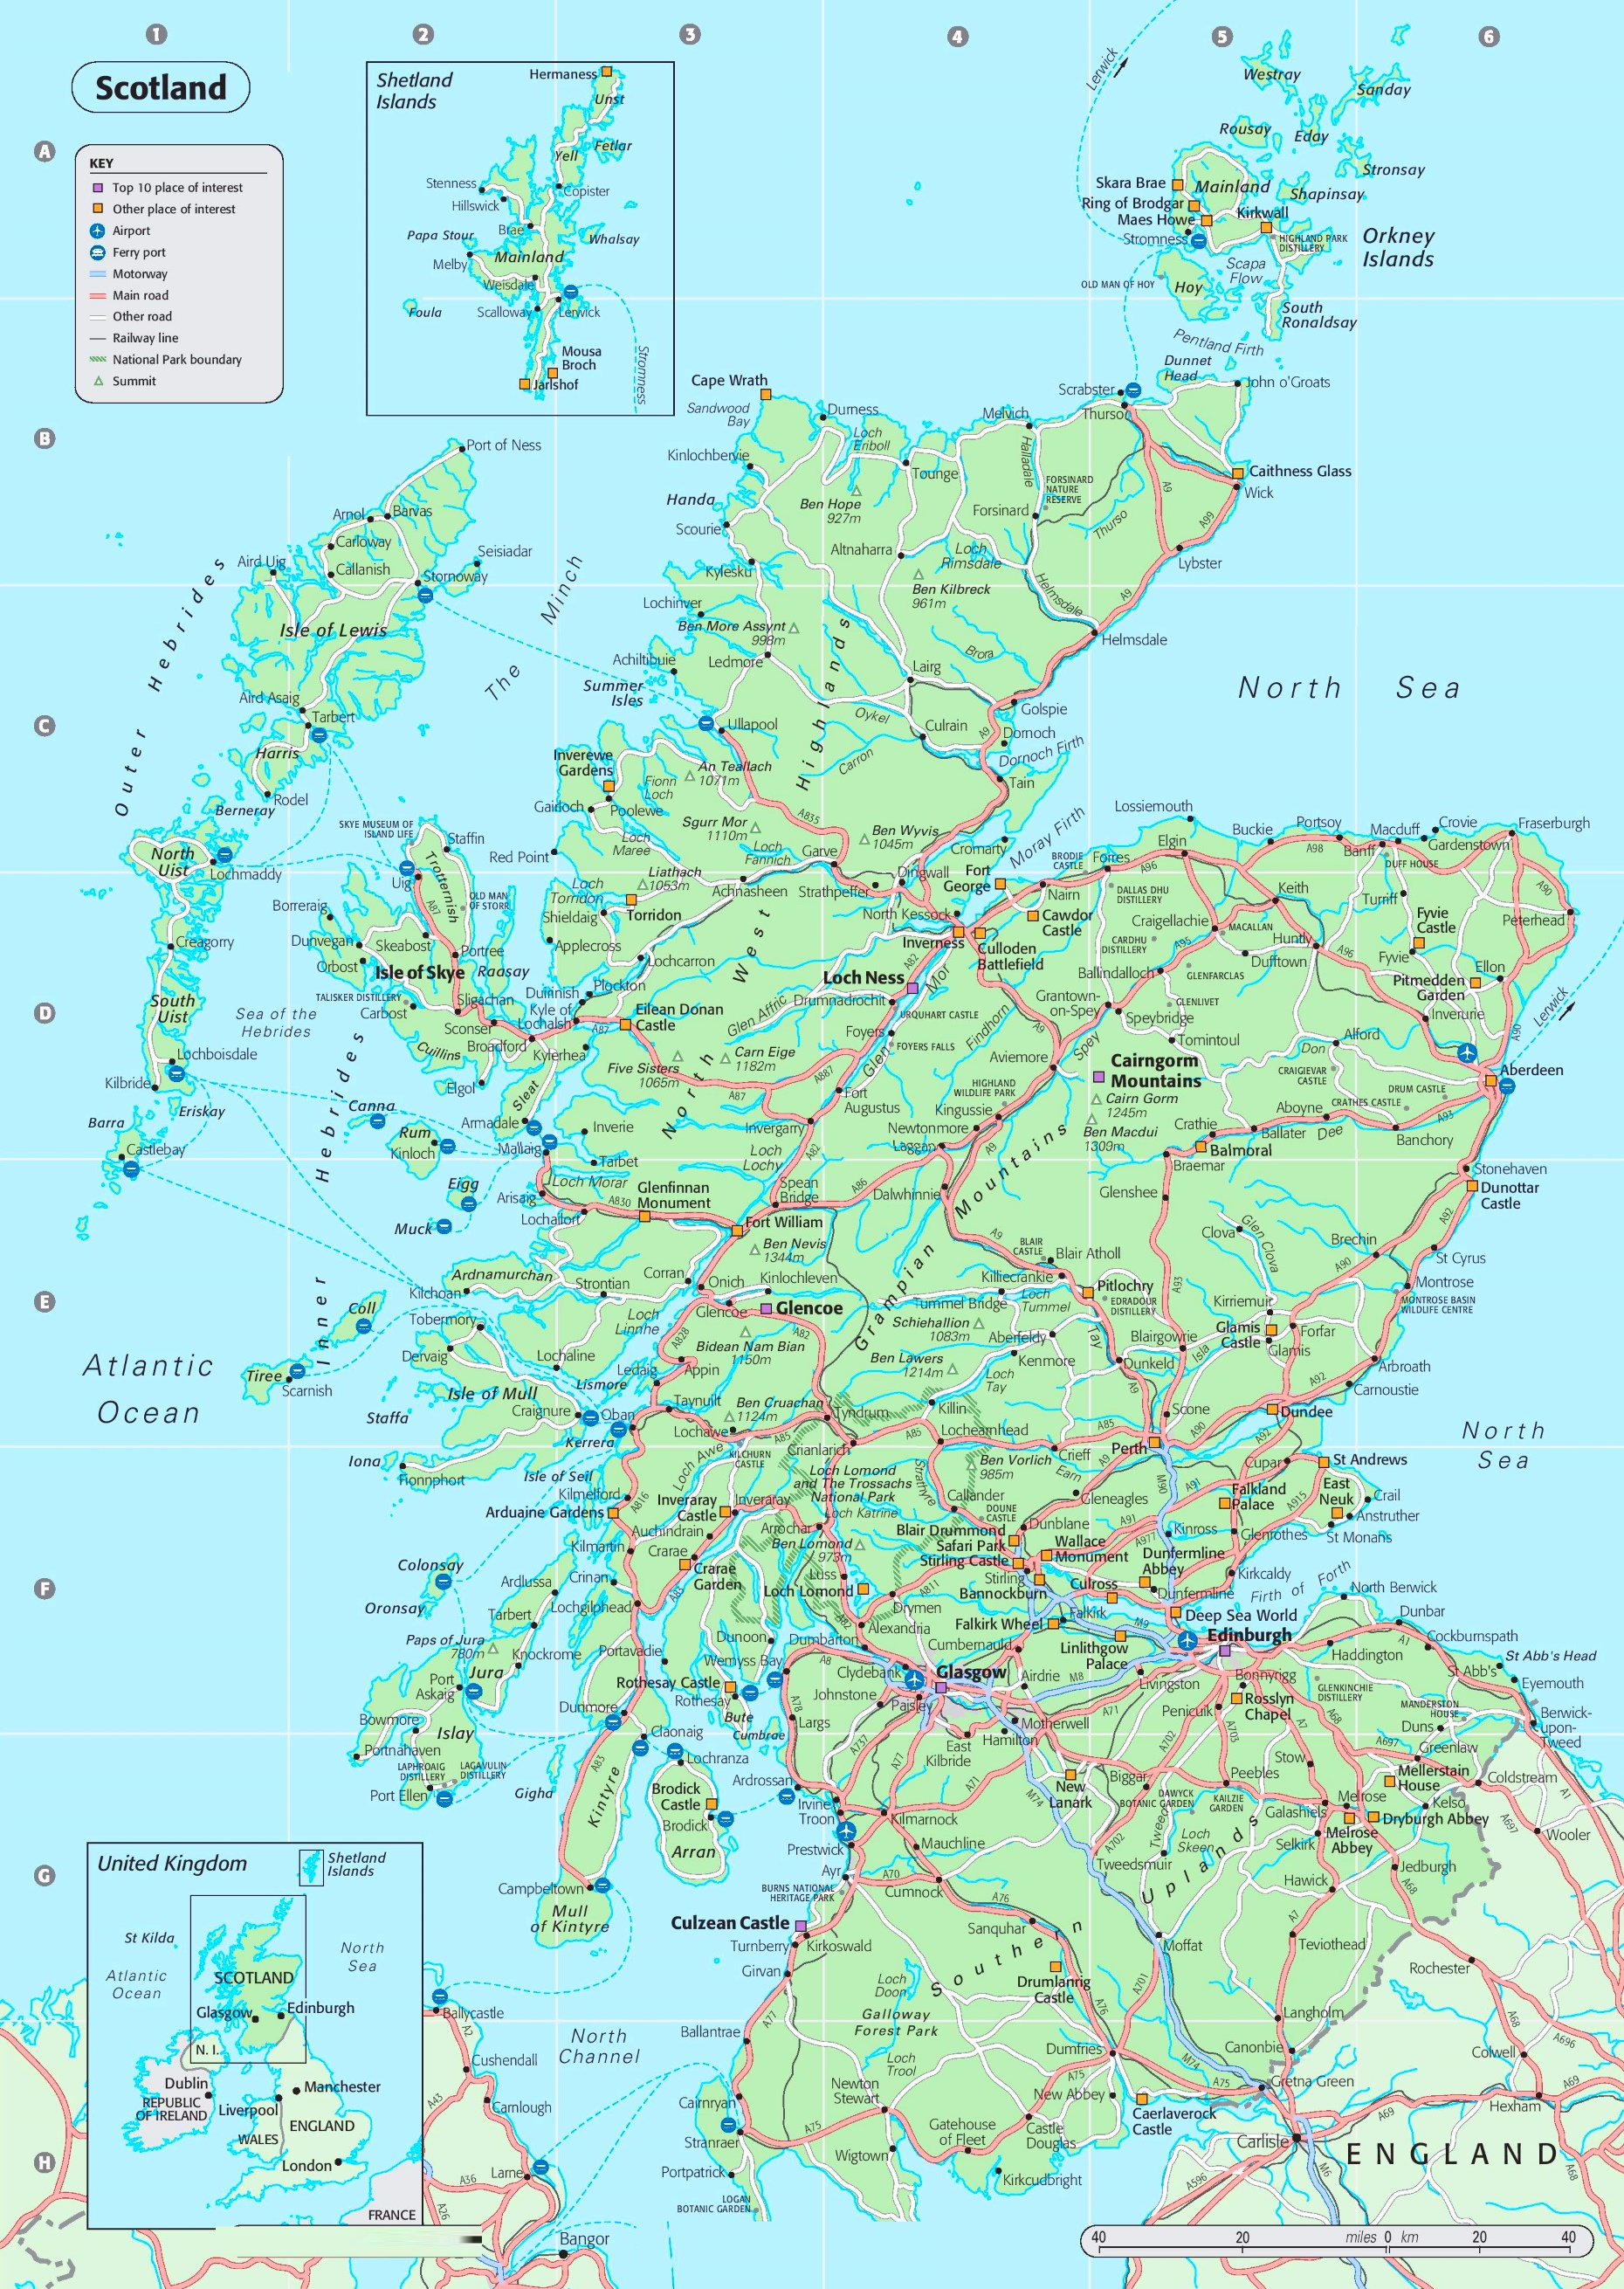 Map Of Uk And Scotland.Detailed Map Of Scotland